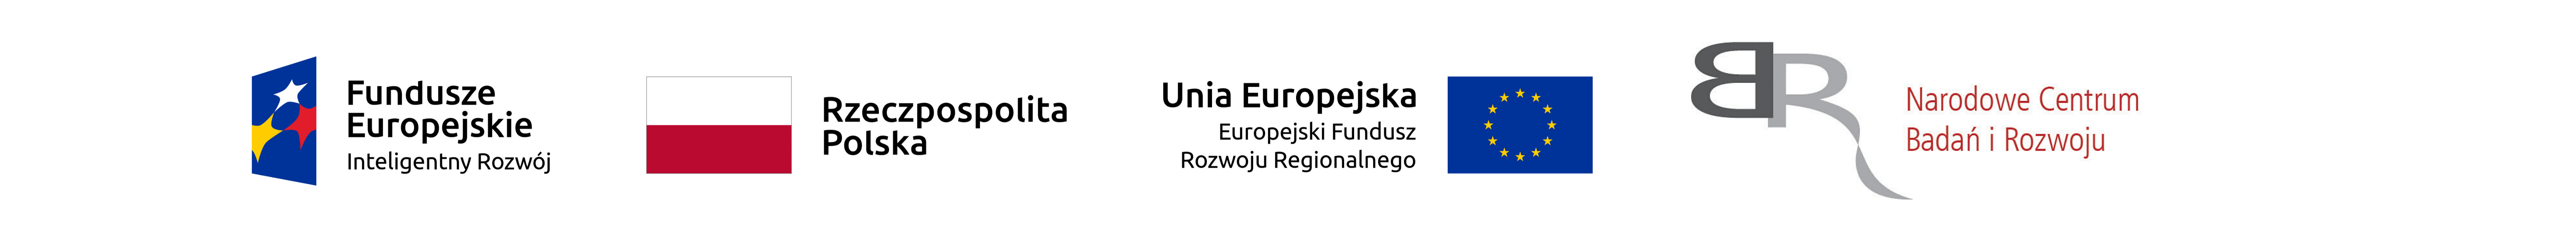 European Funds Smart Growth, Republic of Poland, European Union Regional Development Fund, National Centre for Research and Development